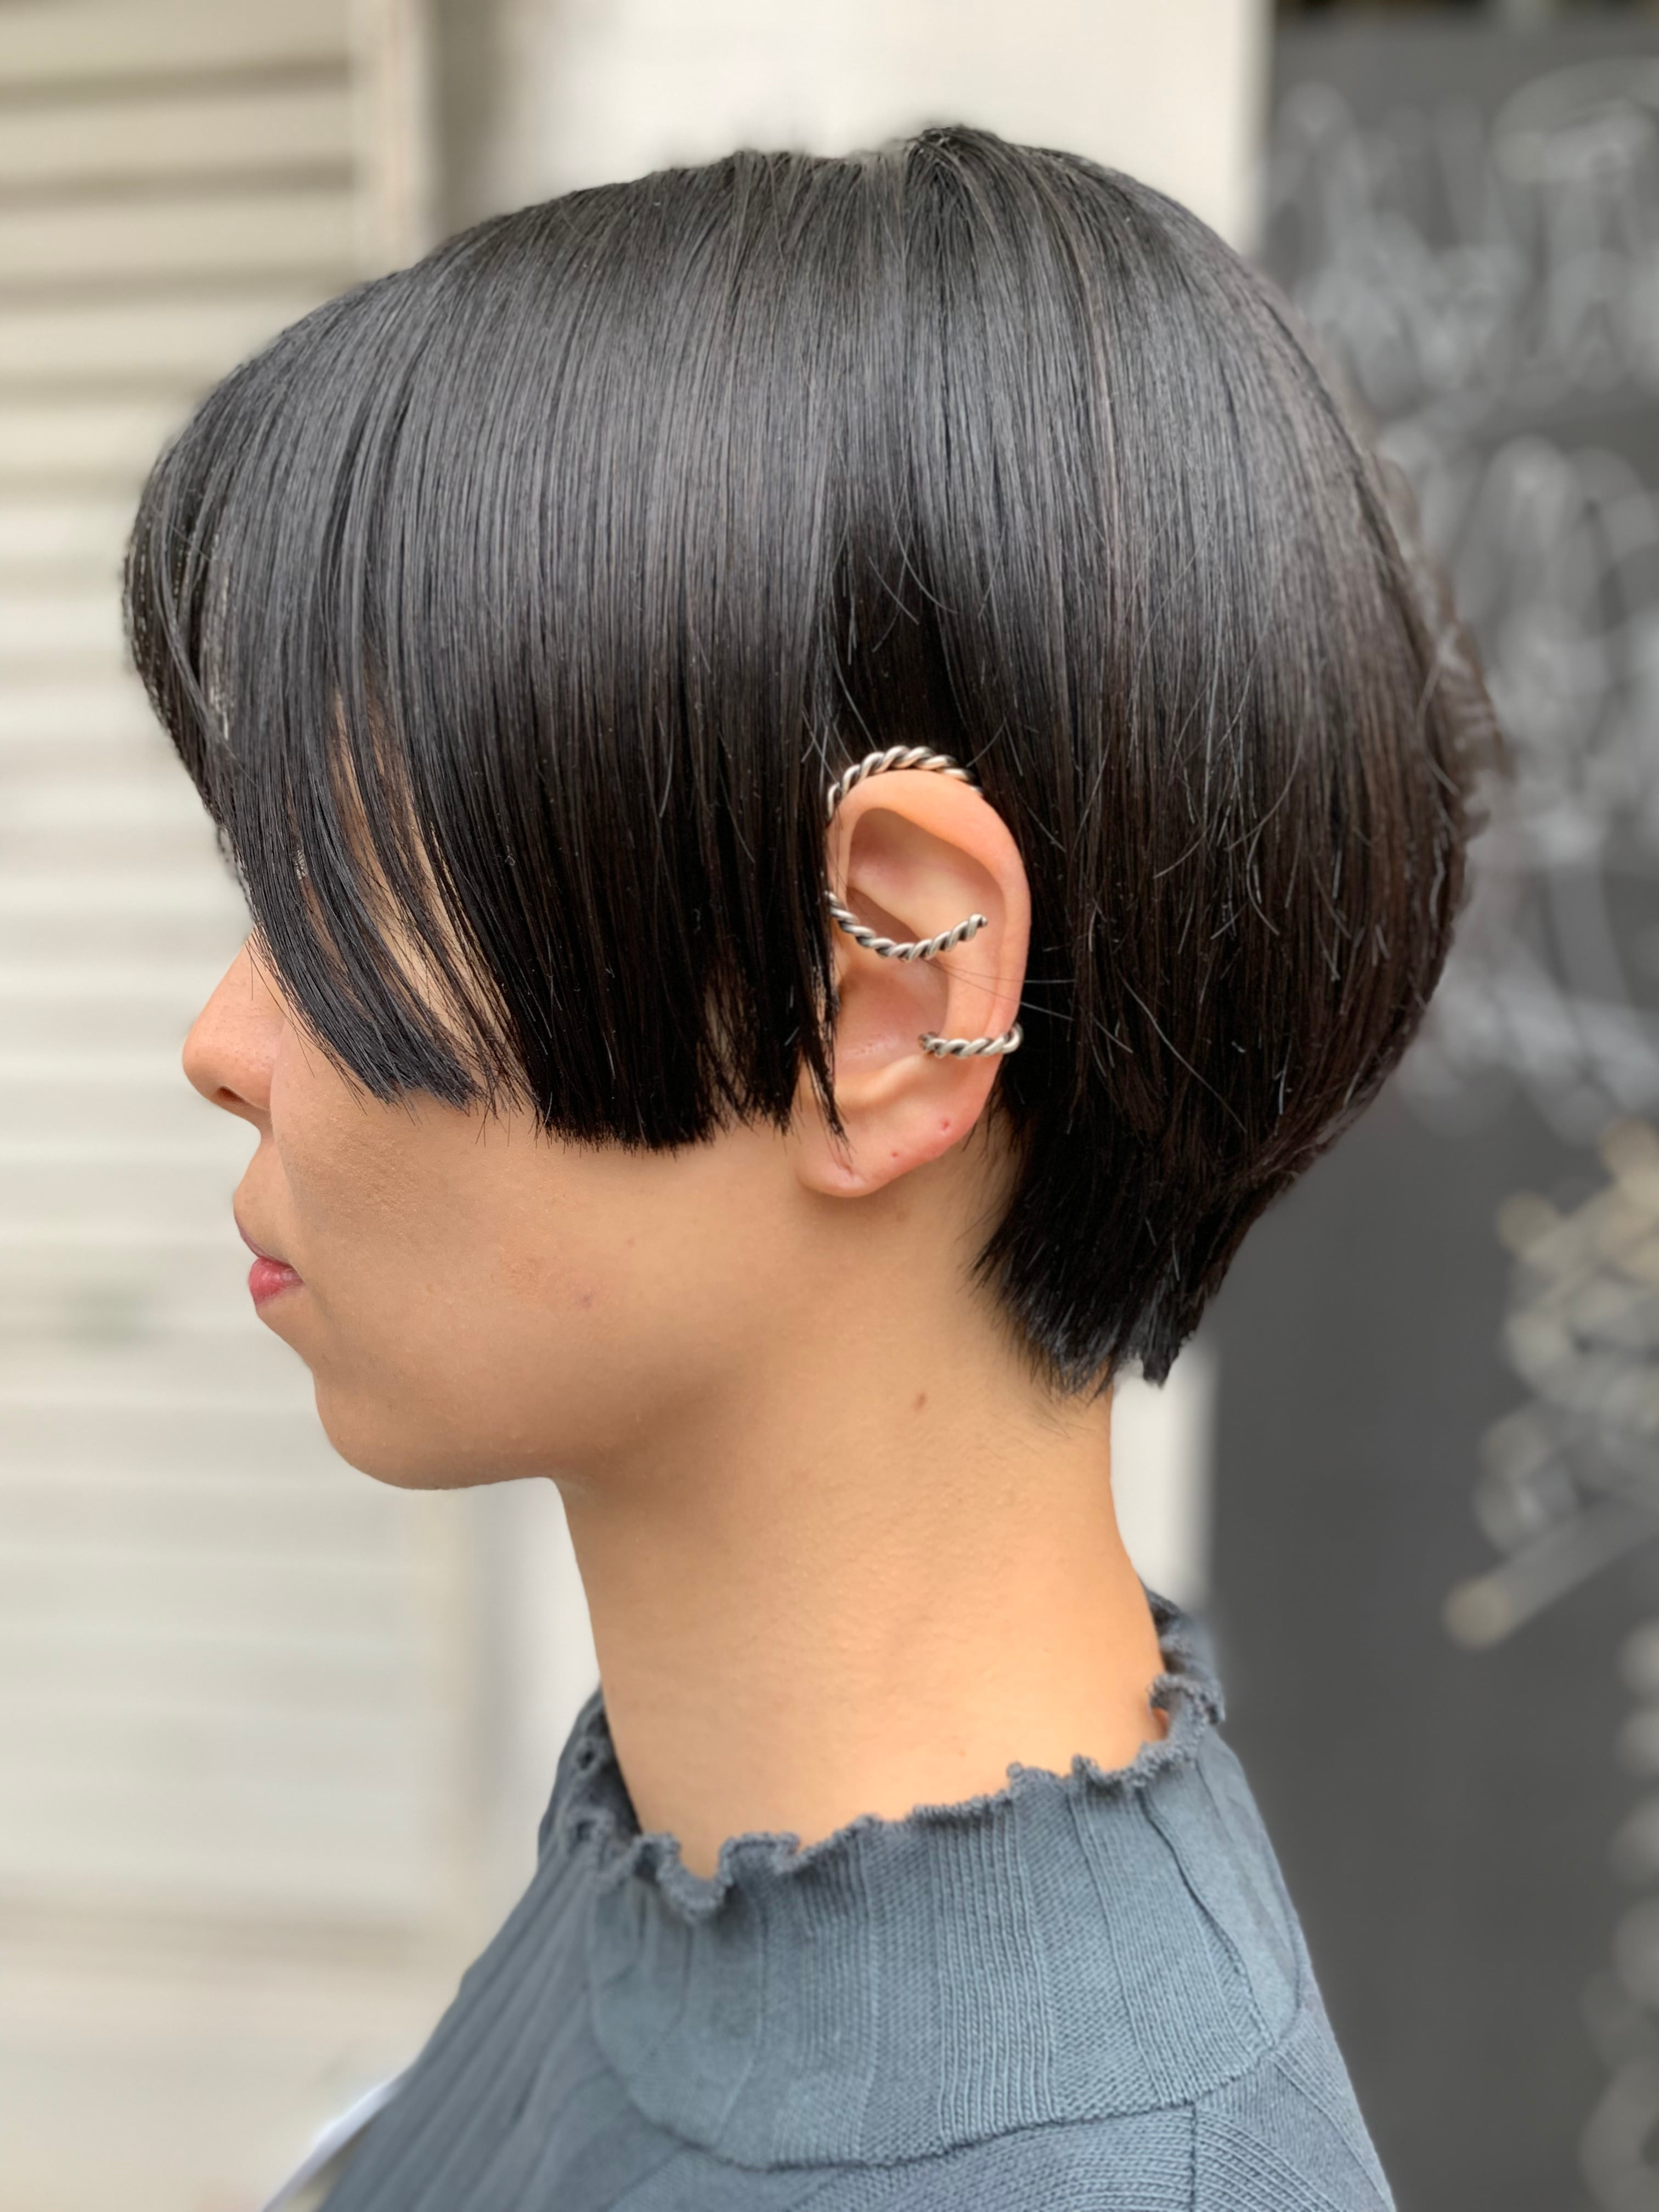 Roping spiral ear caff